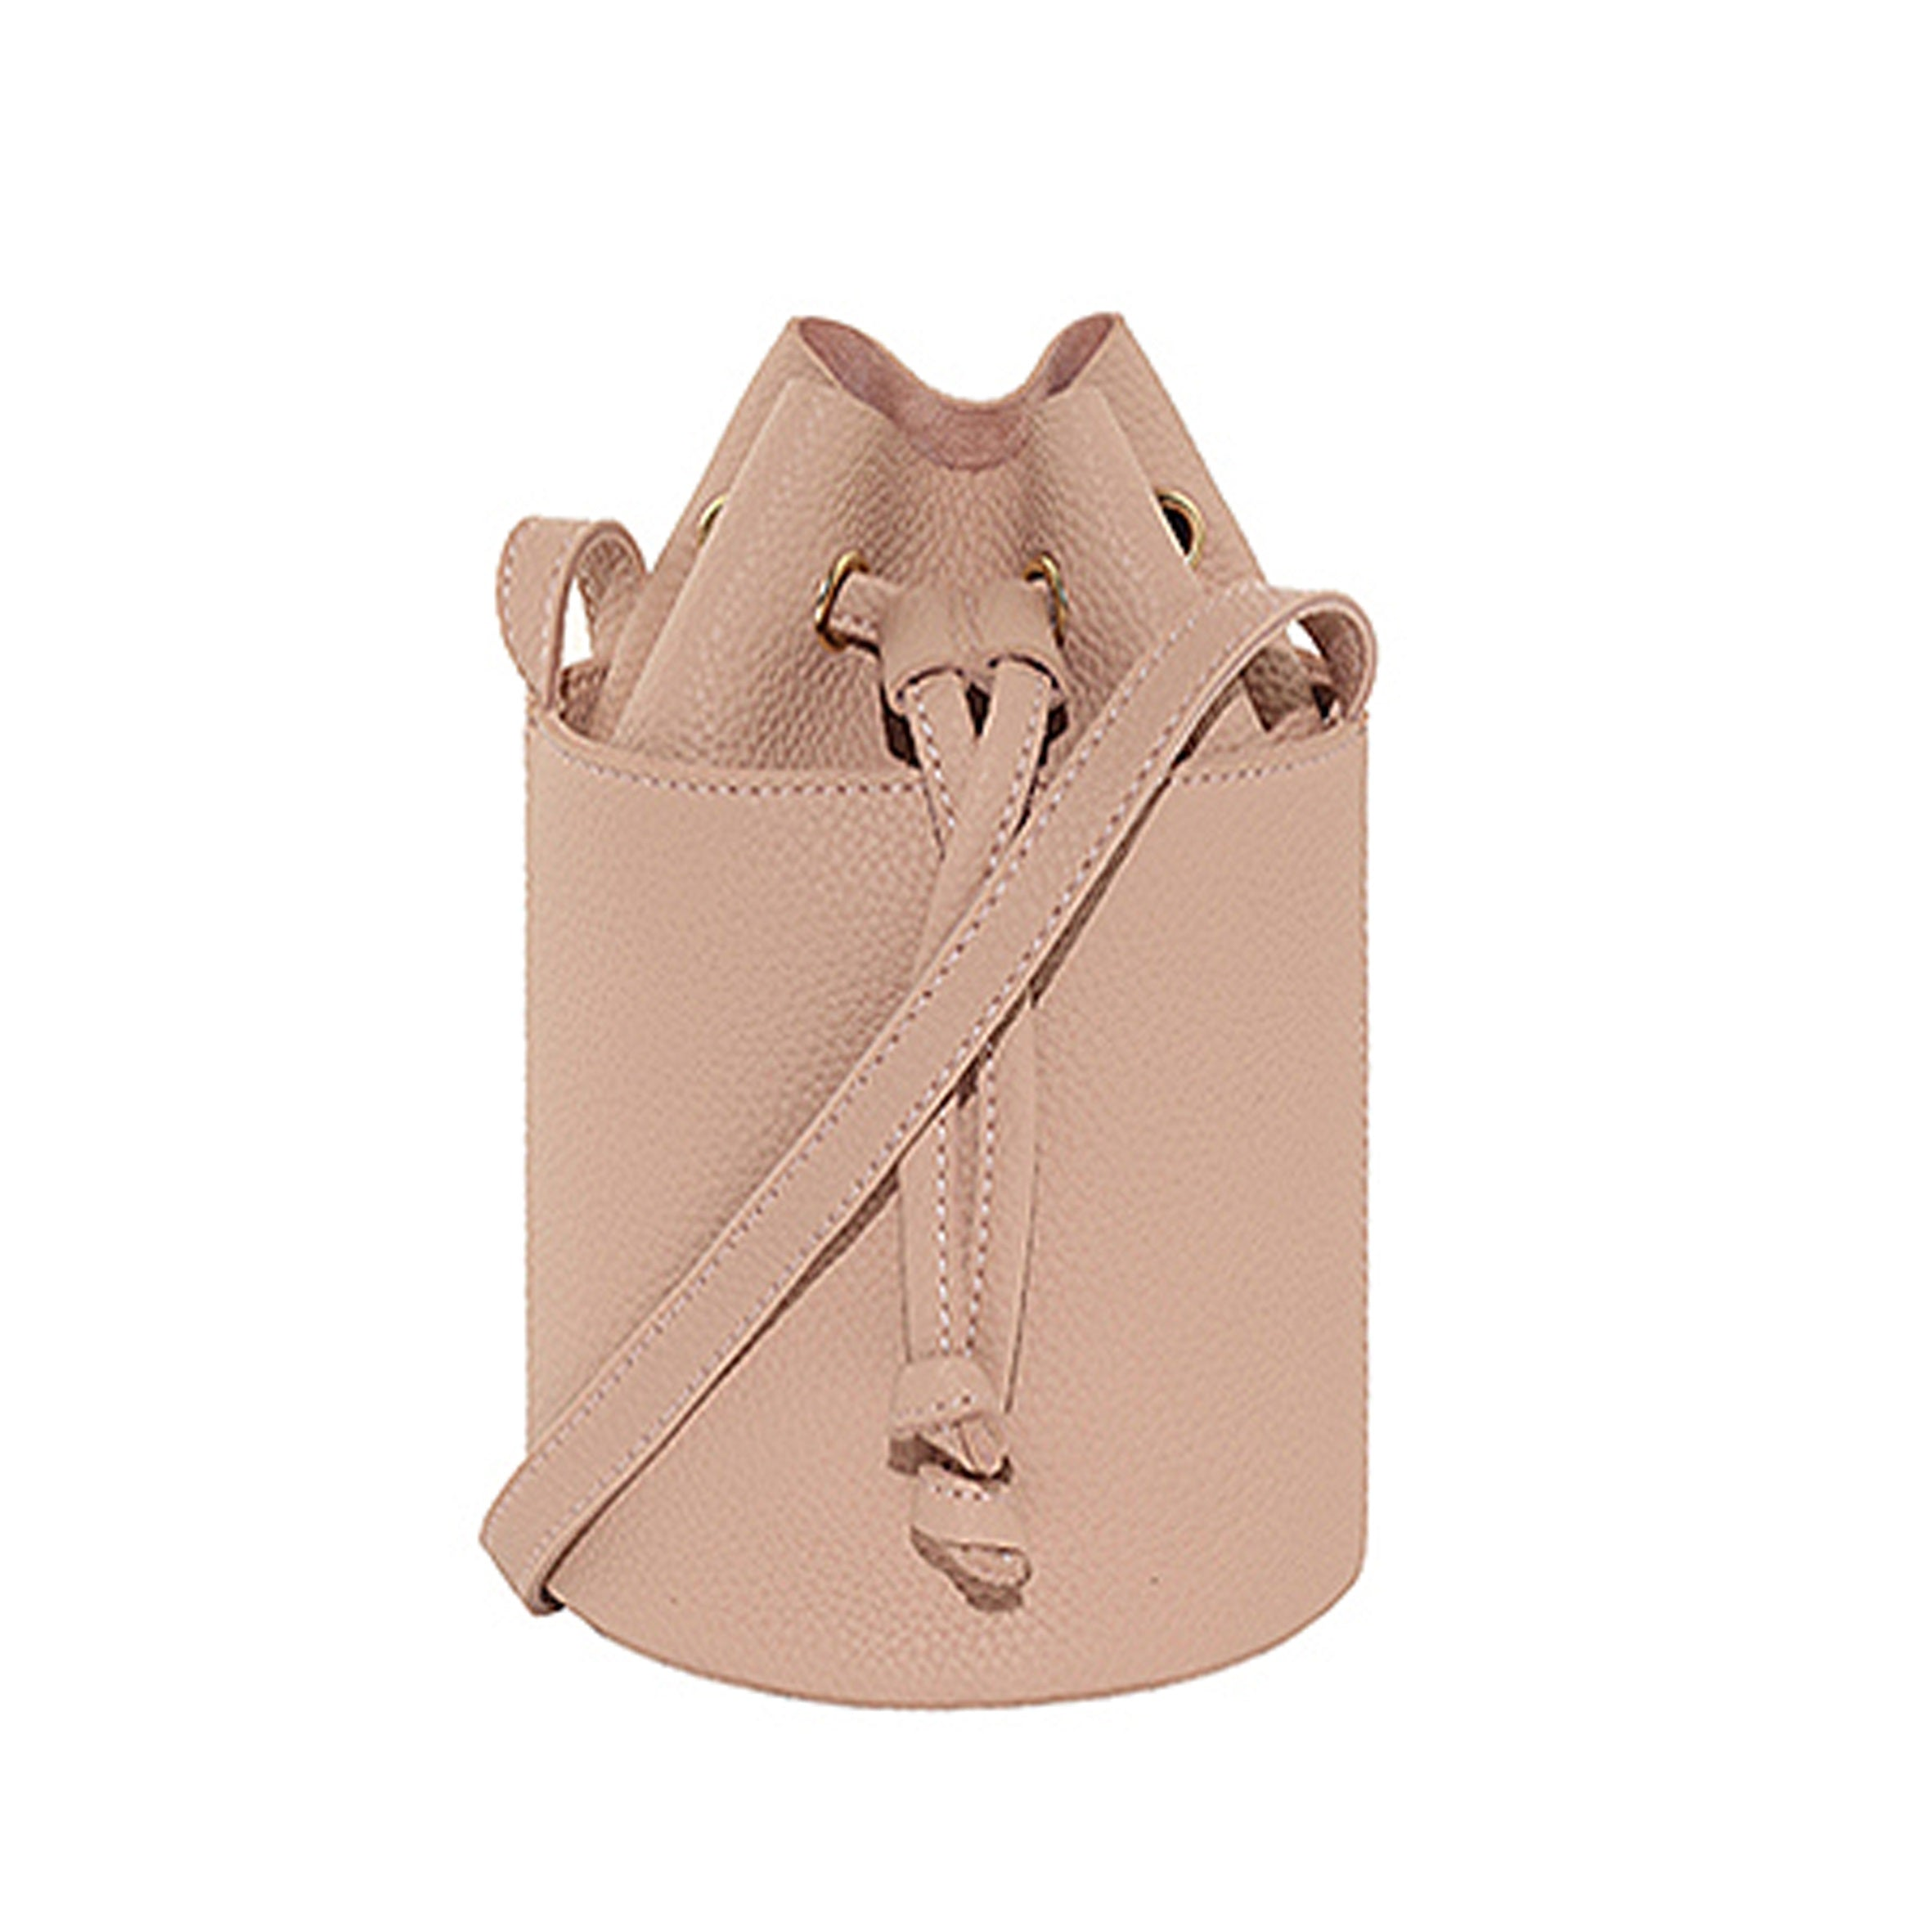 Ansley Bucket Bag